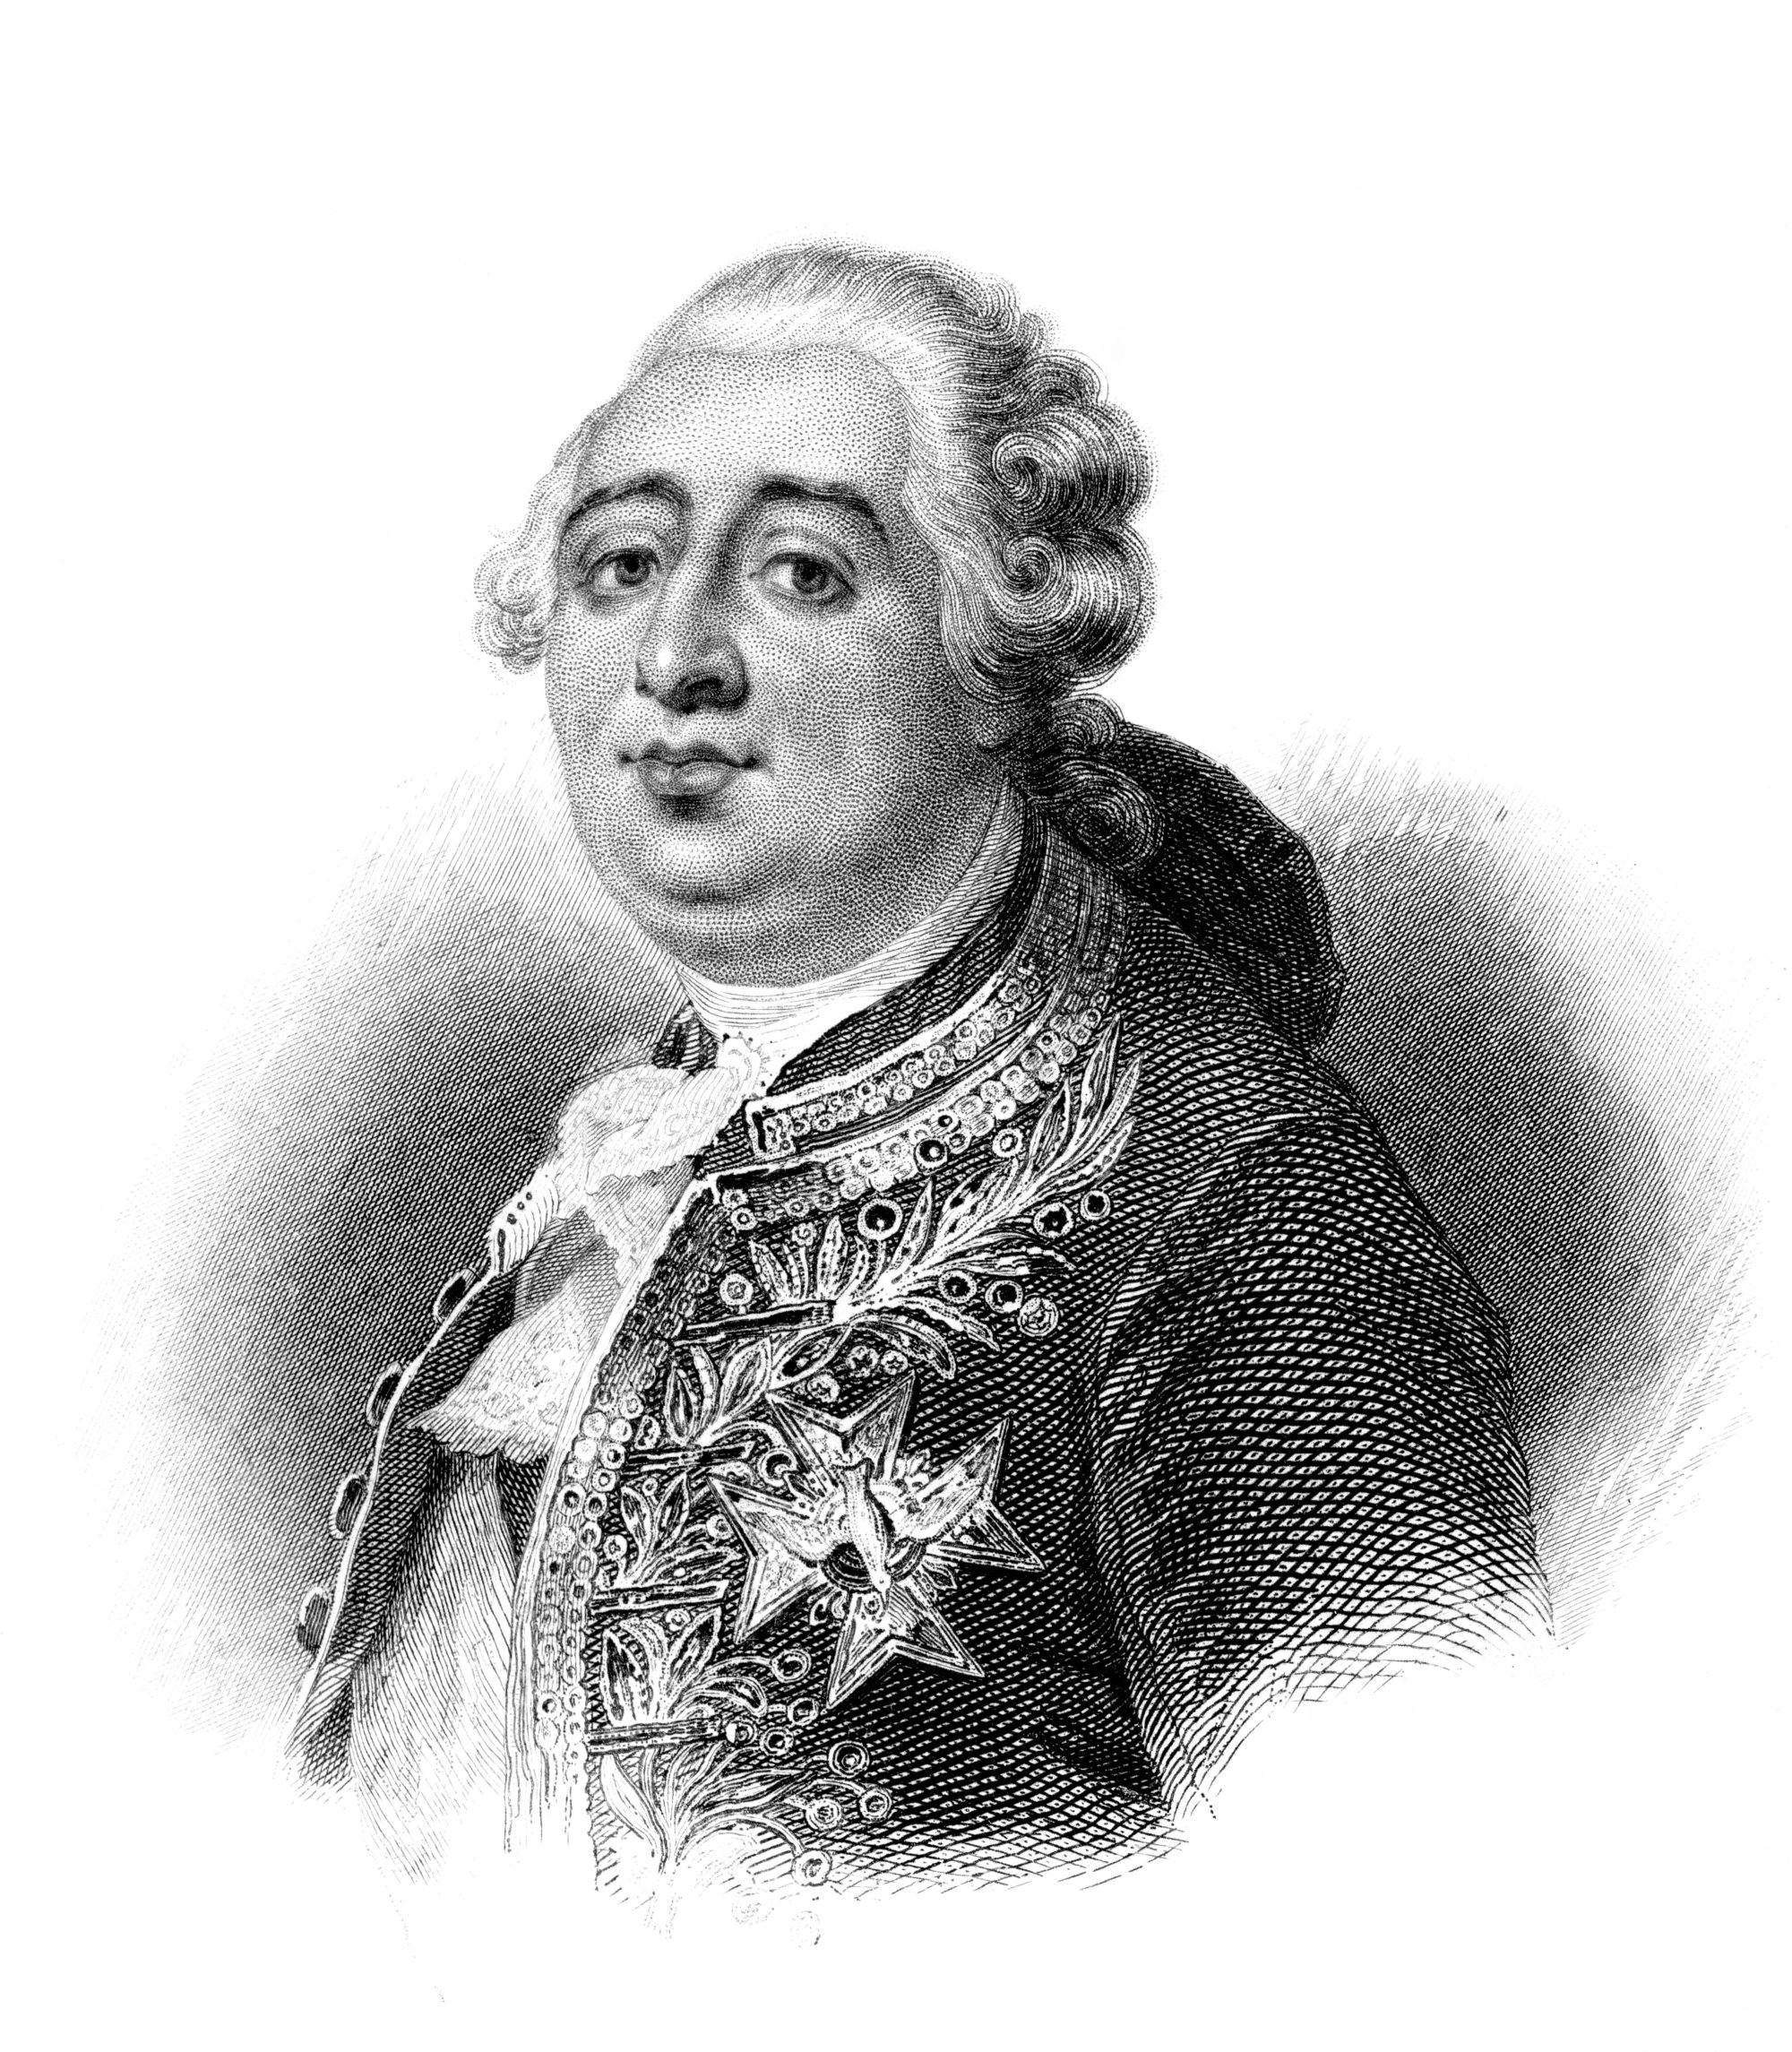 An engraved illustration portrait of King Louis XVI during the French Revolution  from a Victorian book dated 1881 that is no longer in copyright